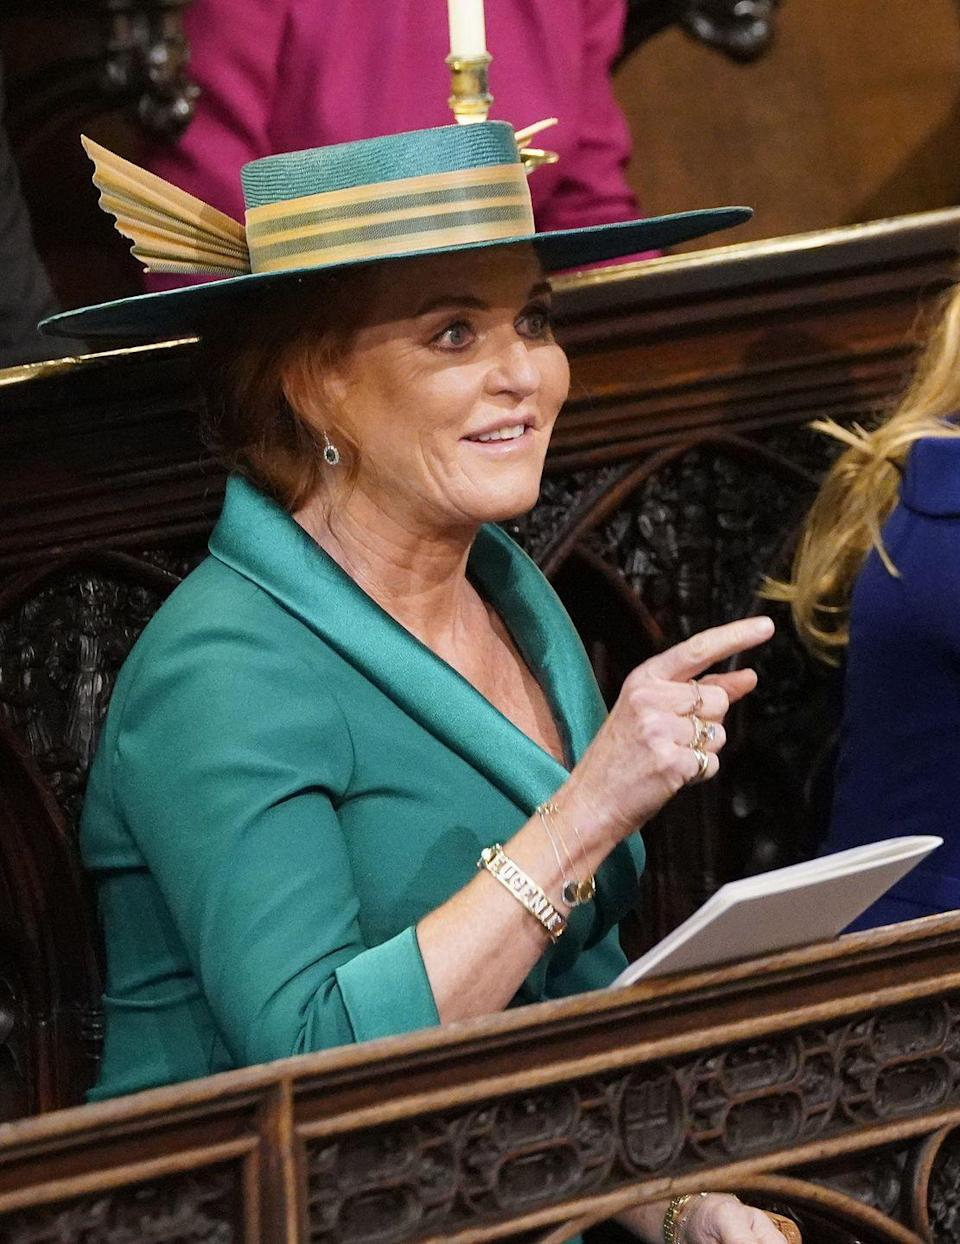 """<p>Maybe <a href=""""https://www.goodhousekeeping.com/life/a23731030/sarah-ferguson-princess-eugenie-wedding-dress/"""" rel=""""nofollow noopener"""" target=""""_blank"""" data-ylk=""""slk:Sarah Ferguson's hat"""" class=""""link rapid-noclick-resp"""">Sarah Ferguson's hat</a> <em>was </em>a little wild at Princes Eugenie's royal wedding, but the sweetest gesture ever was her tribute to her two daughters, Princesses Beatrice and Eugenie. The mother of the bride wore a <a href=""""https://www.goodhousekeeping.com/beauty/fashion/a23890165/sarah-ferguson-eugenie-bracelet-jewelry-royal-wedding/"""" rel=""""nofollow noopener"""" target=""""_blank"""" data-ylk=""""slk:gorgeous bangle with her daughter's names"""" class=""""link rapid-noclick-resp"""">gorgeous bangle with her daughter's names</a> written in diamonds. Dare we say it? Who cares what else you're wearing when you've got that kind of Mom bling on your wrist?</p>"""